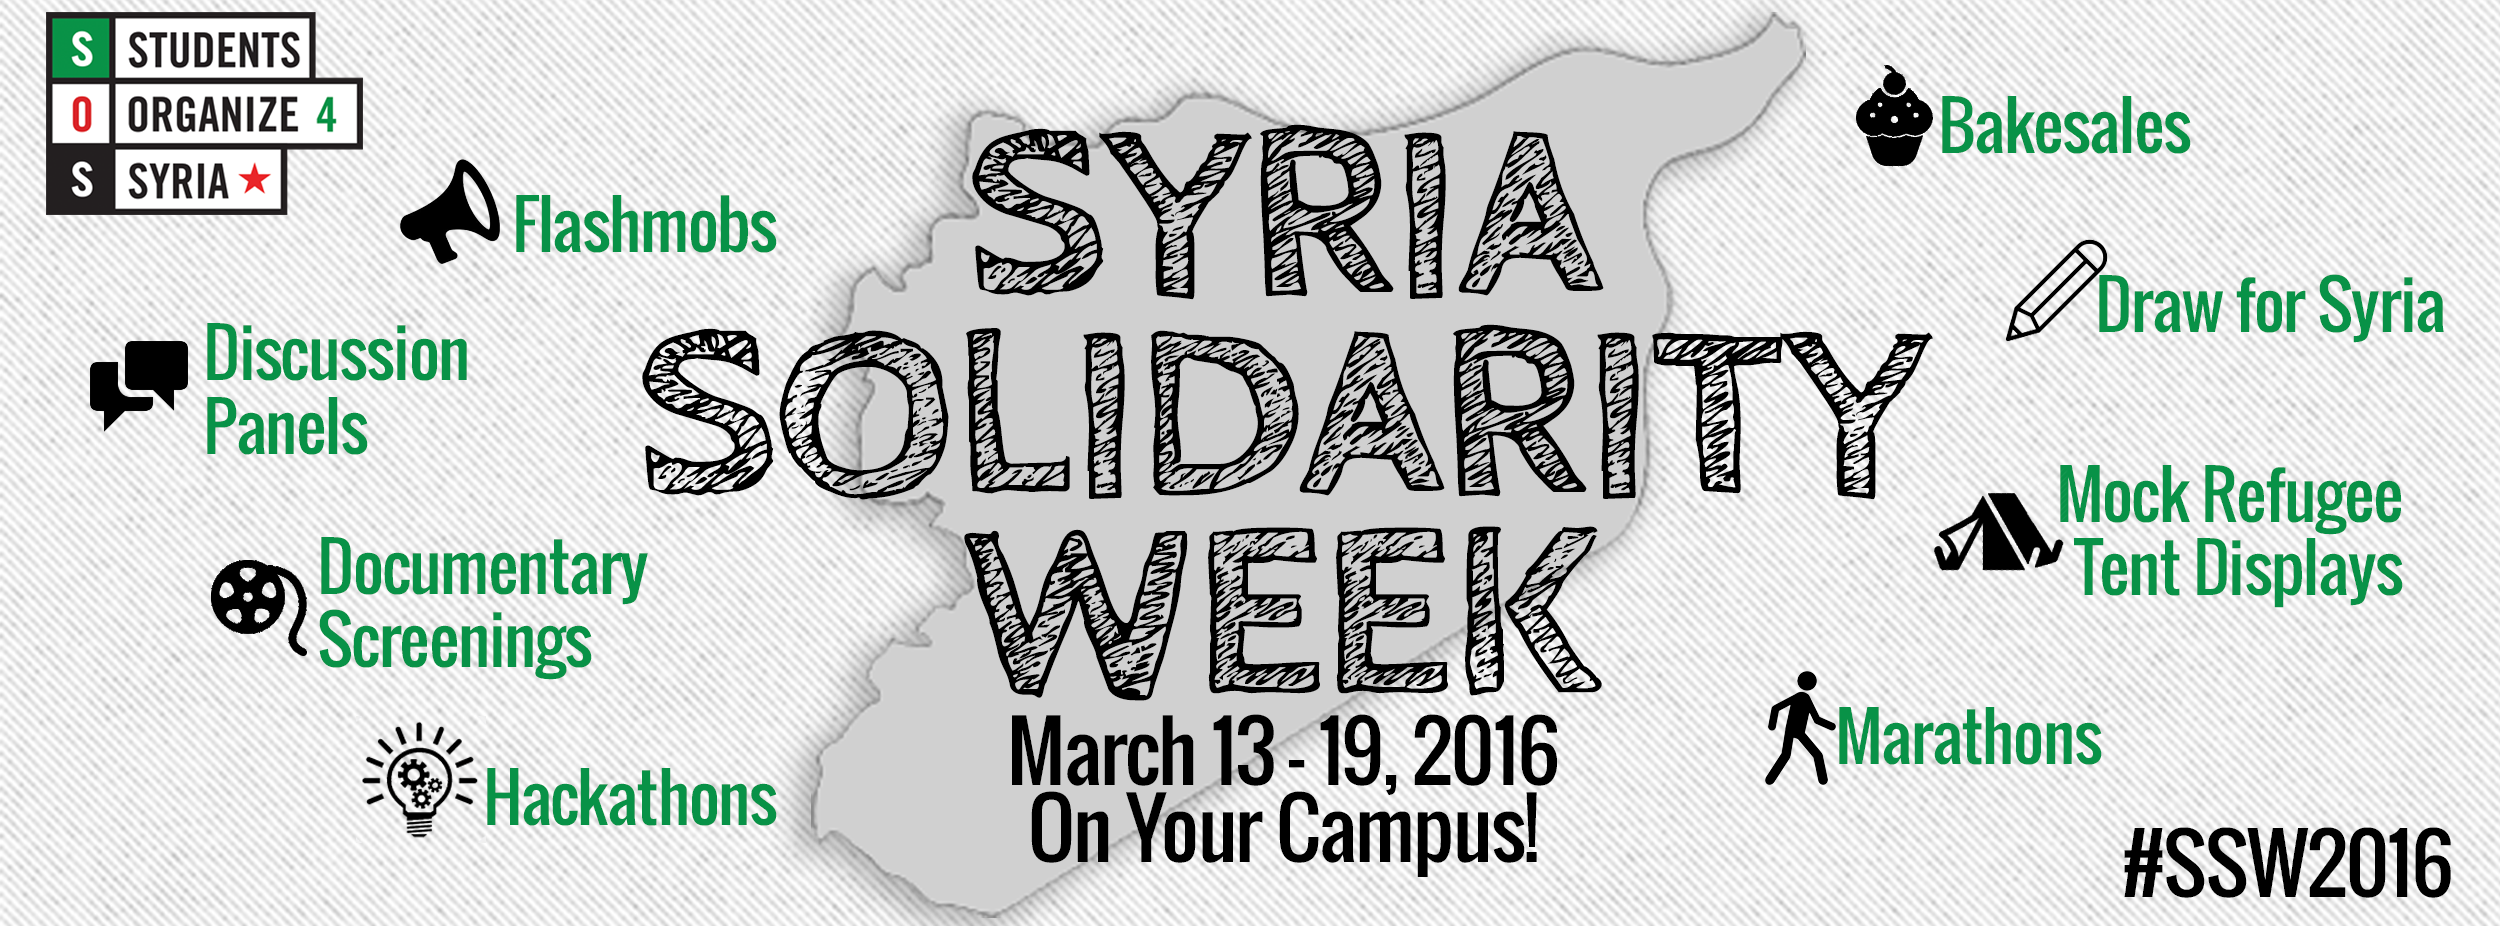 This is our chance as students to remember the roots of the Syrian revolution and honor the Syrian people's struggle for life, liberty, and dignity.